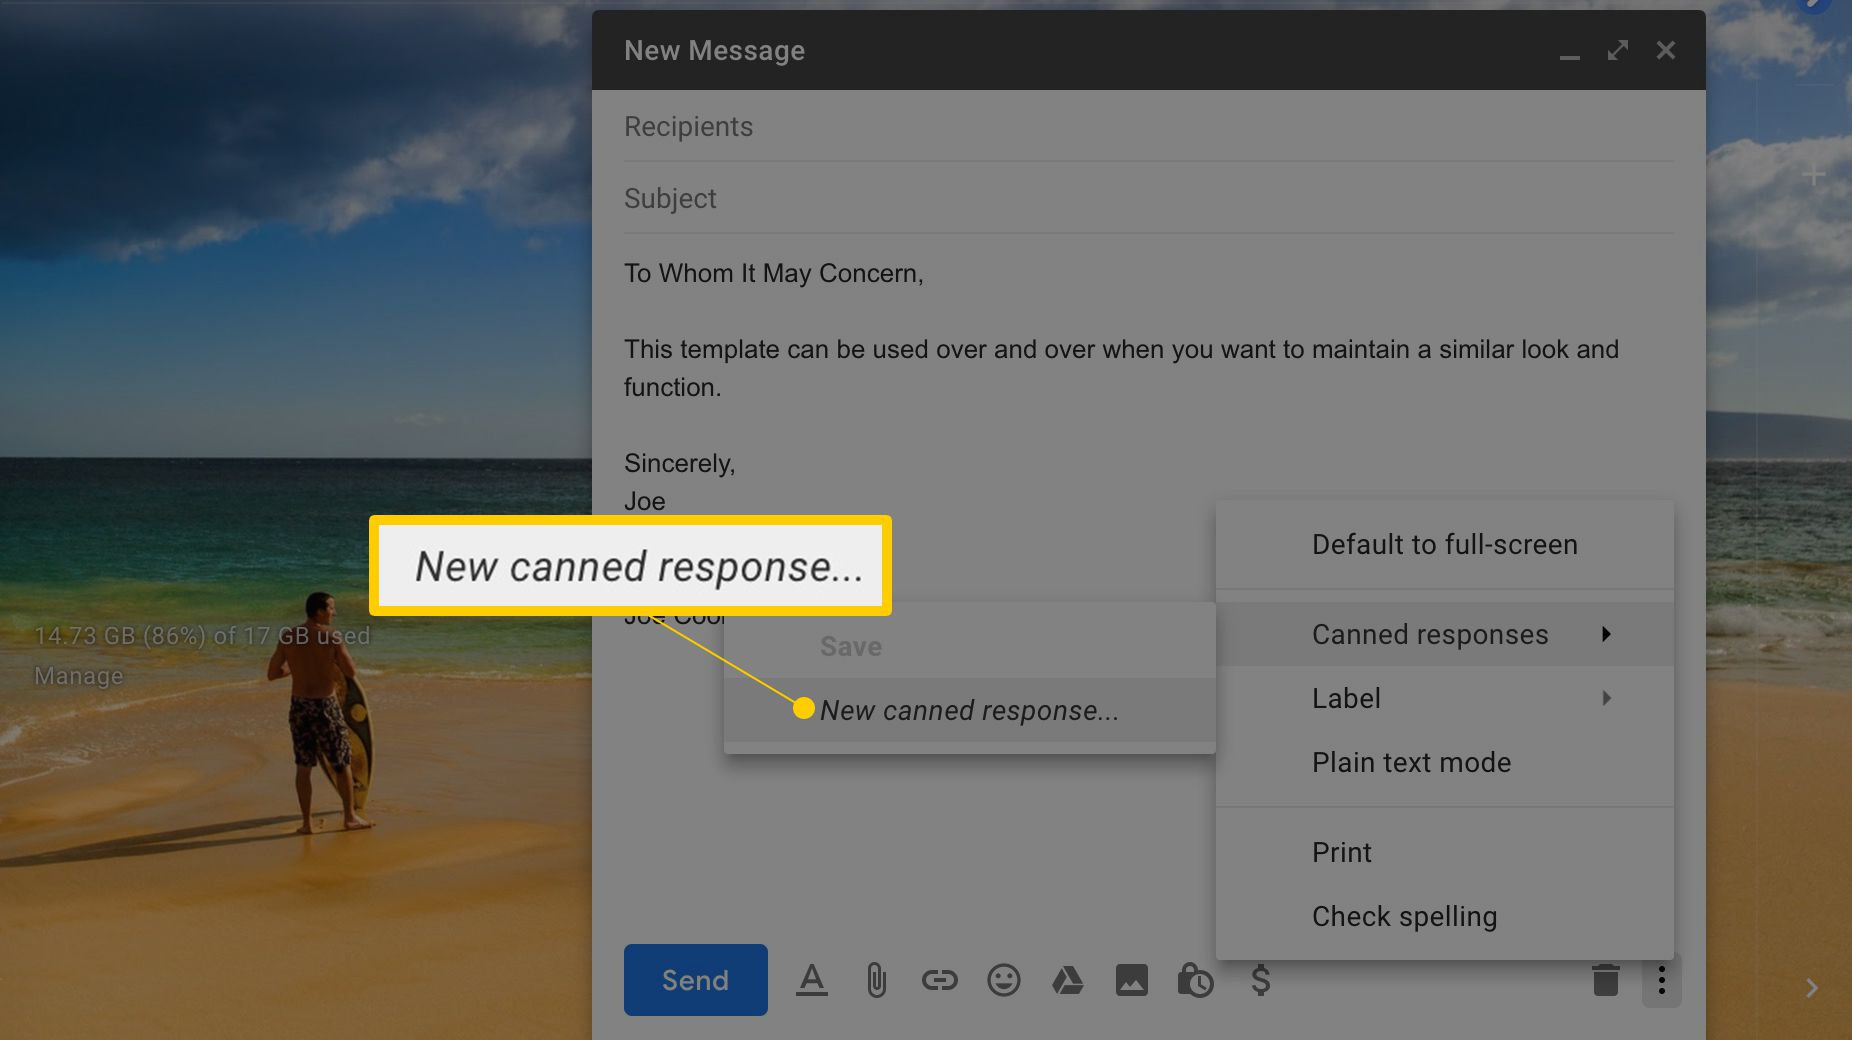 New canned response in Gmail